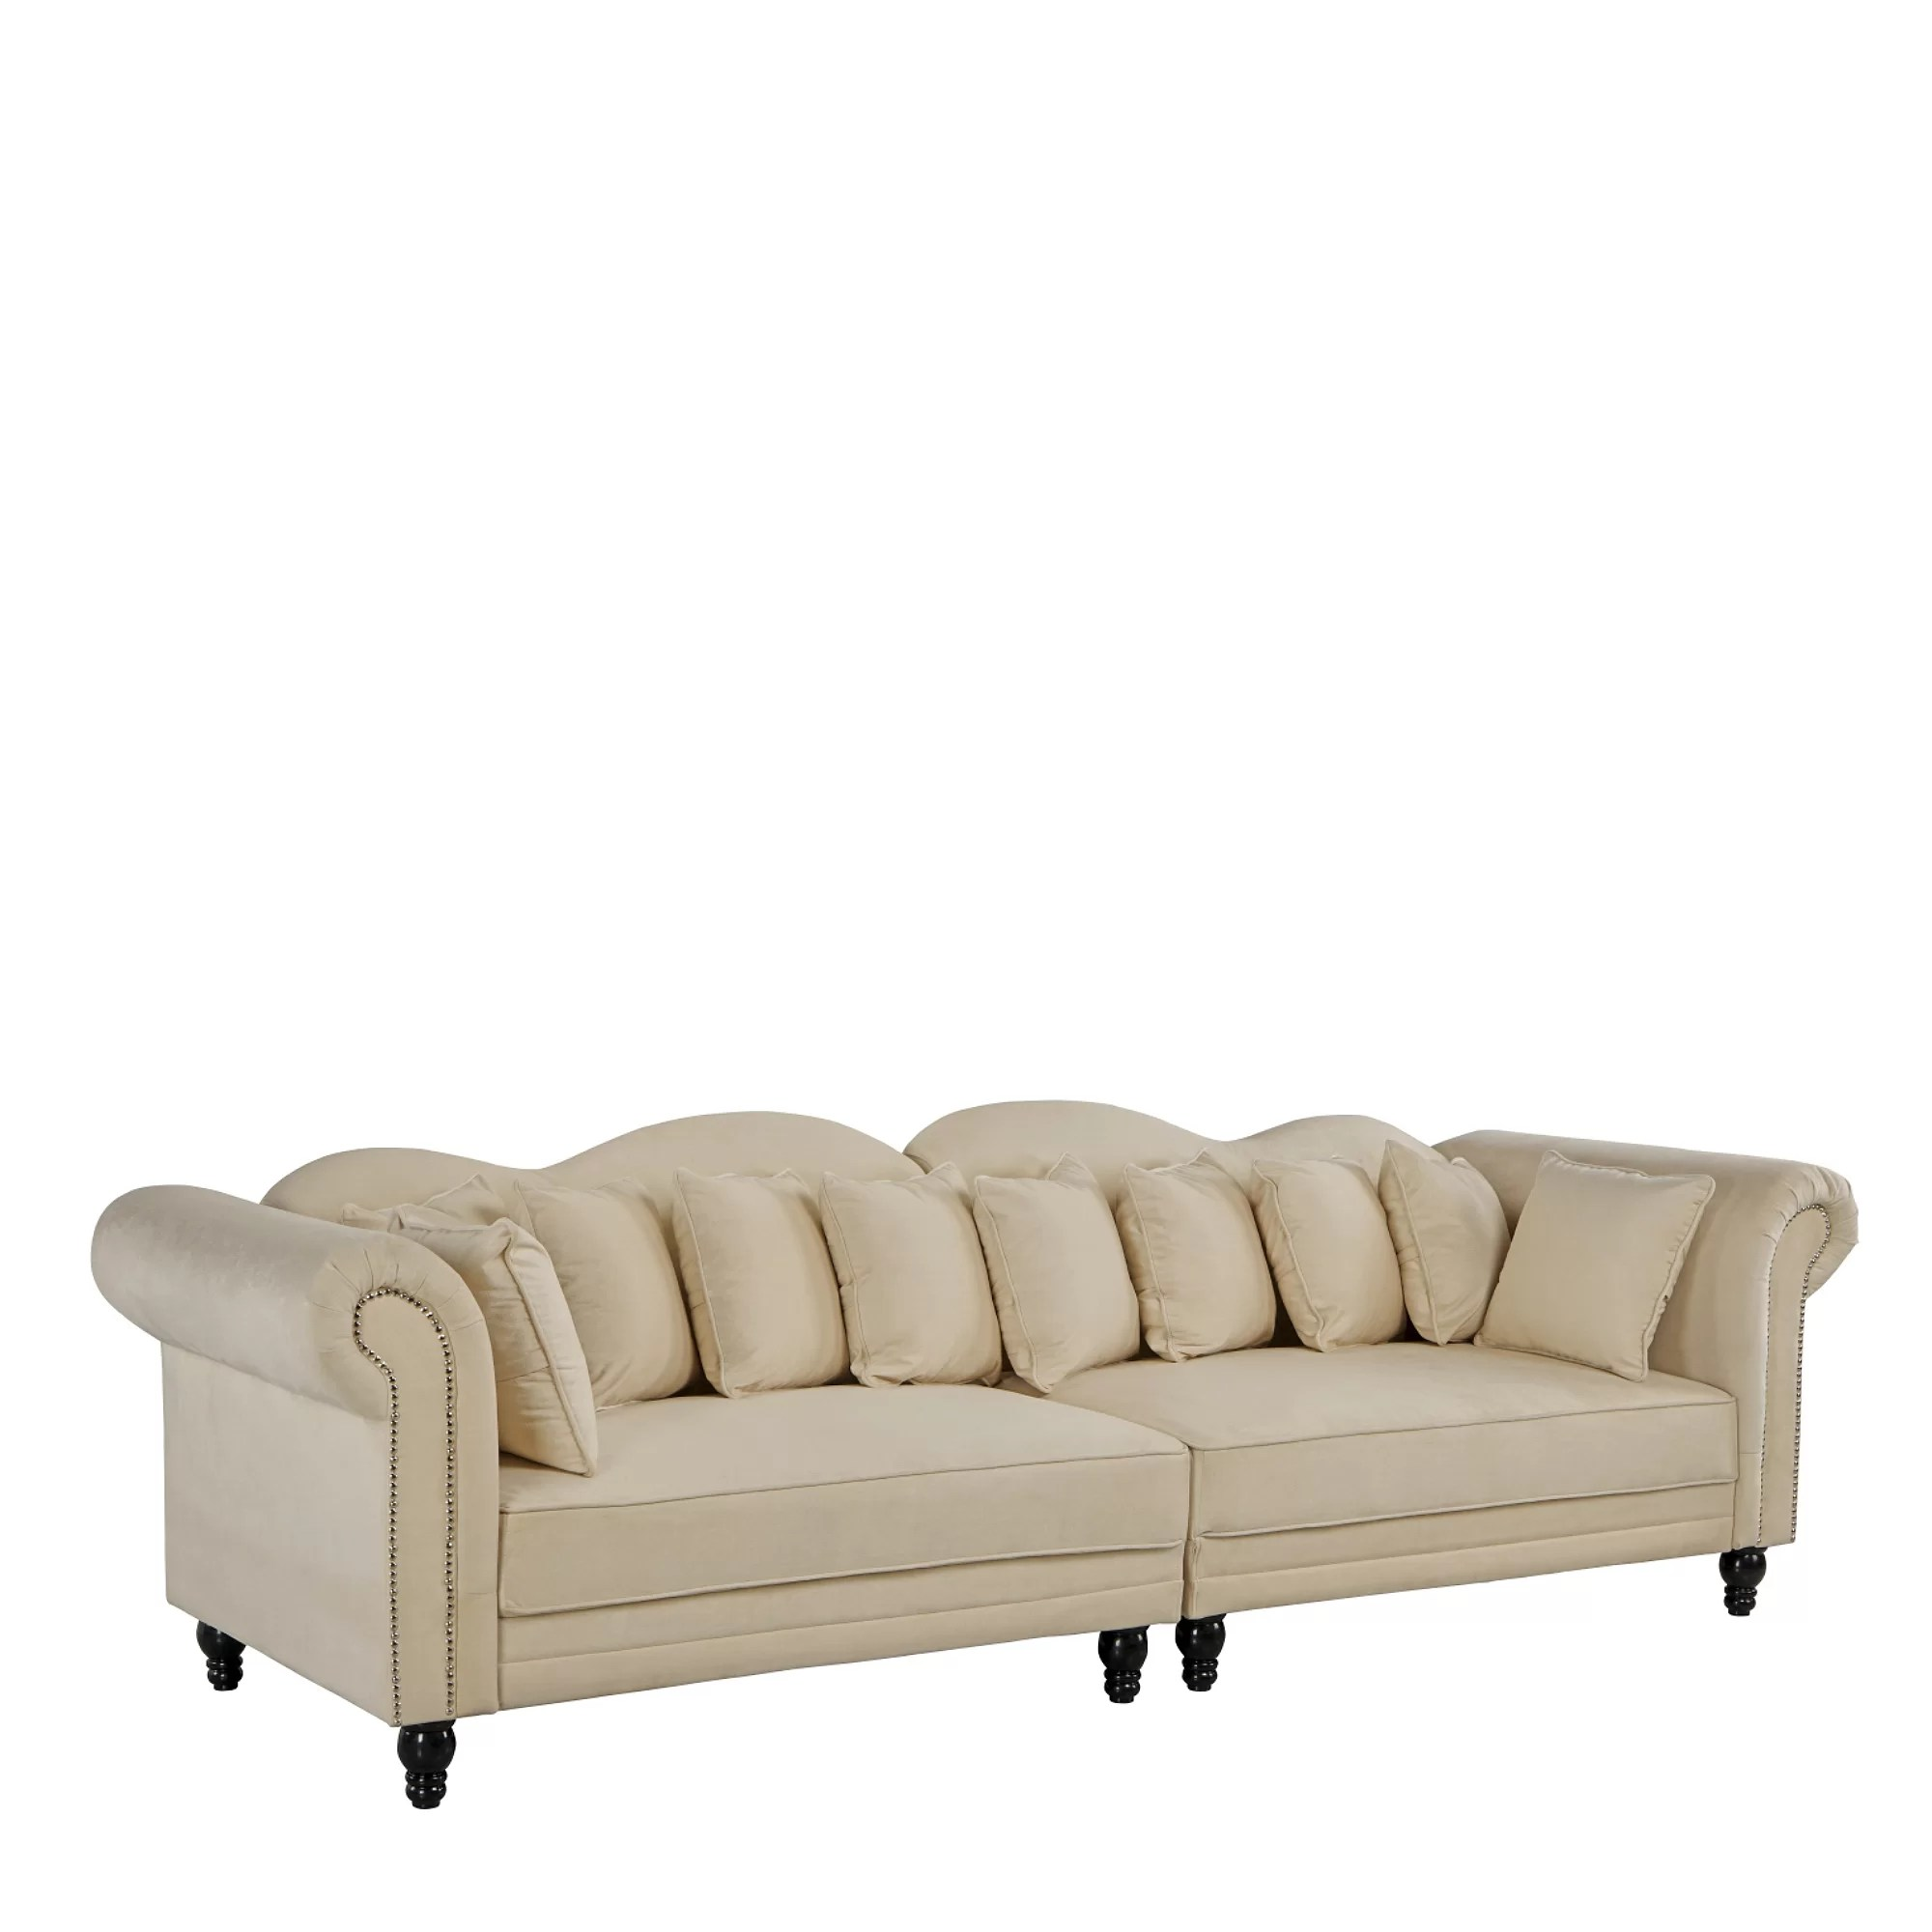 Big Sofa 290 Cm Johnstown Large Chesterfield Sofa